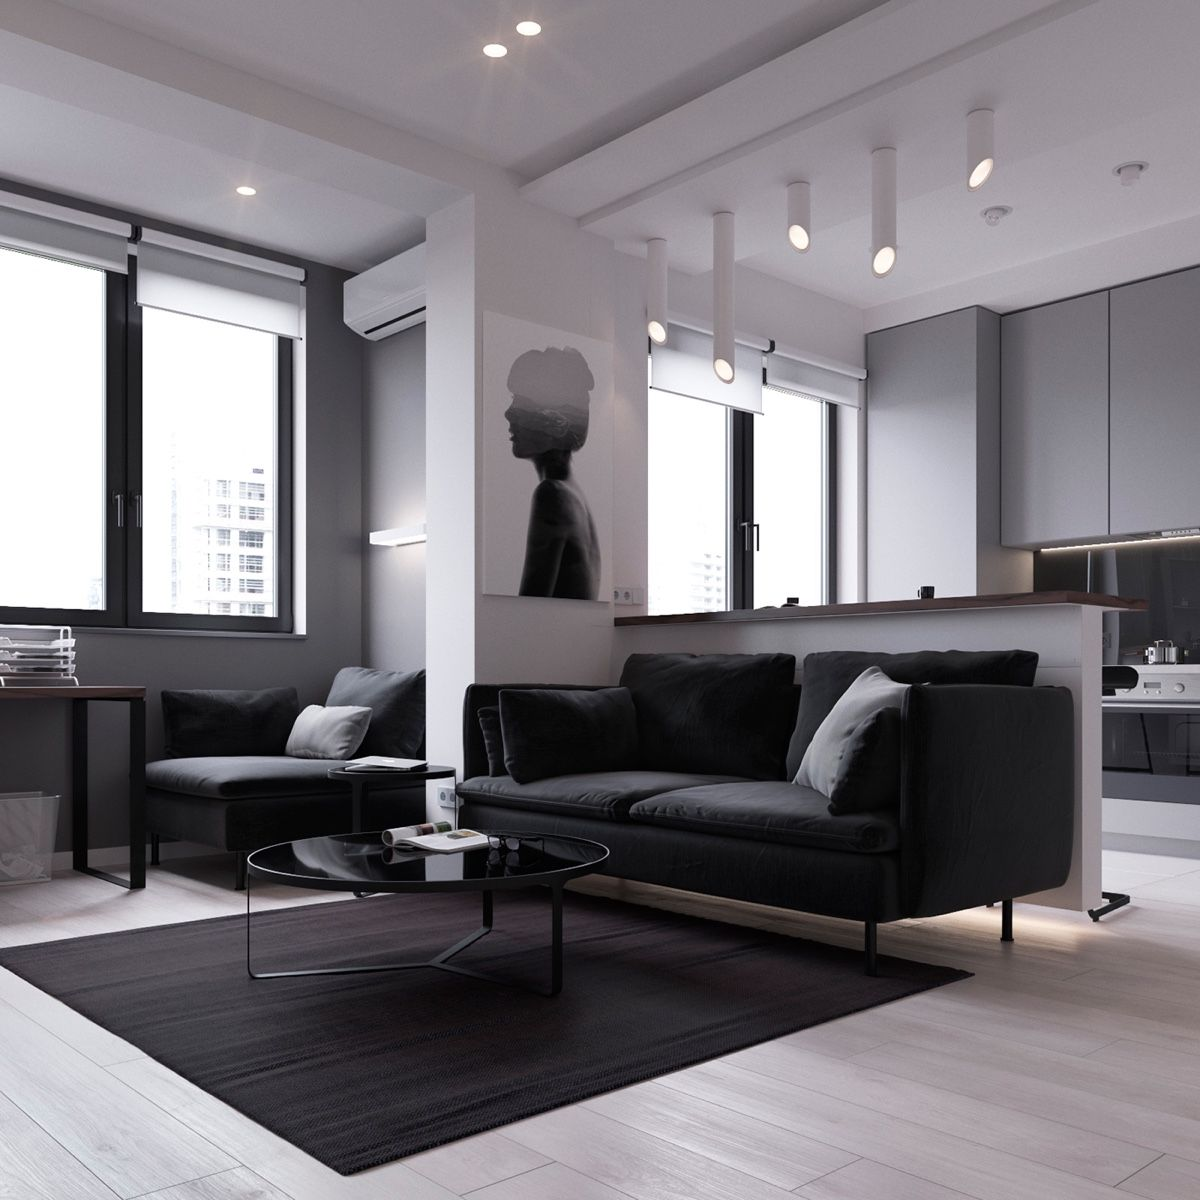 3 Modern Style Apartments Under 50 Square Meters (Includes ...